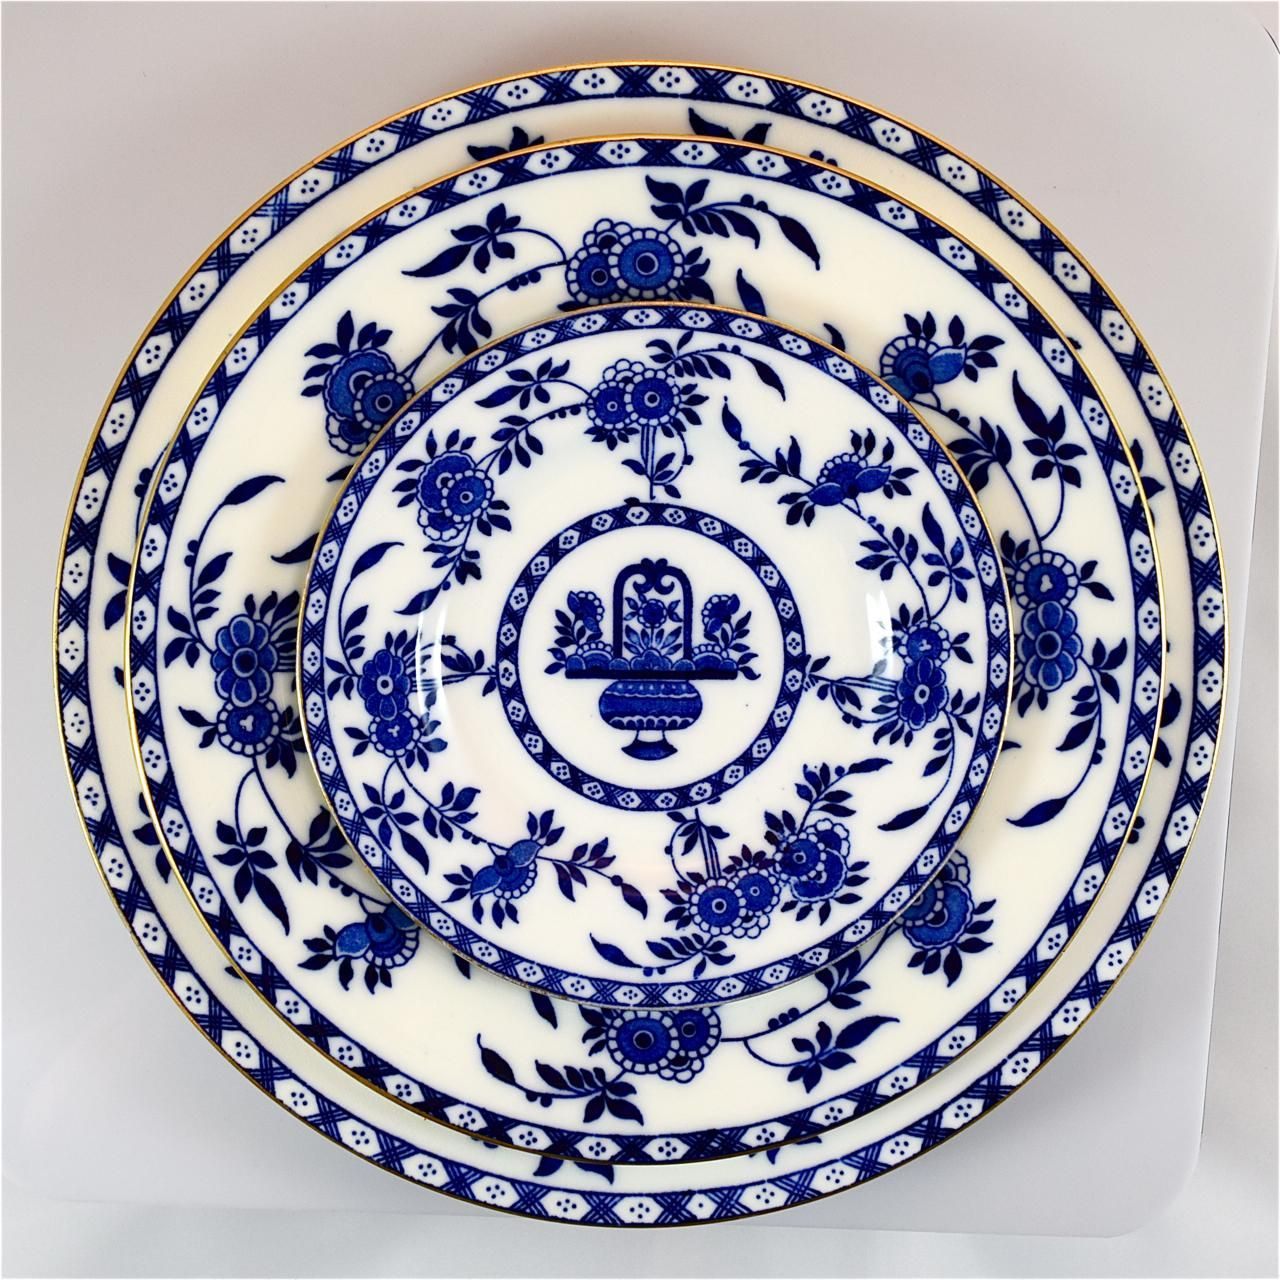 11 MINTON Delft lunch plates #G1613  sc 1 st  Pinterest & 11 MINTON Delft lunch plates #G1613 | Delft and Urn